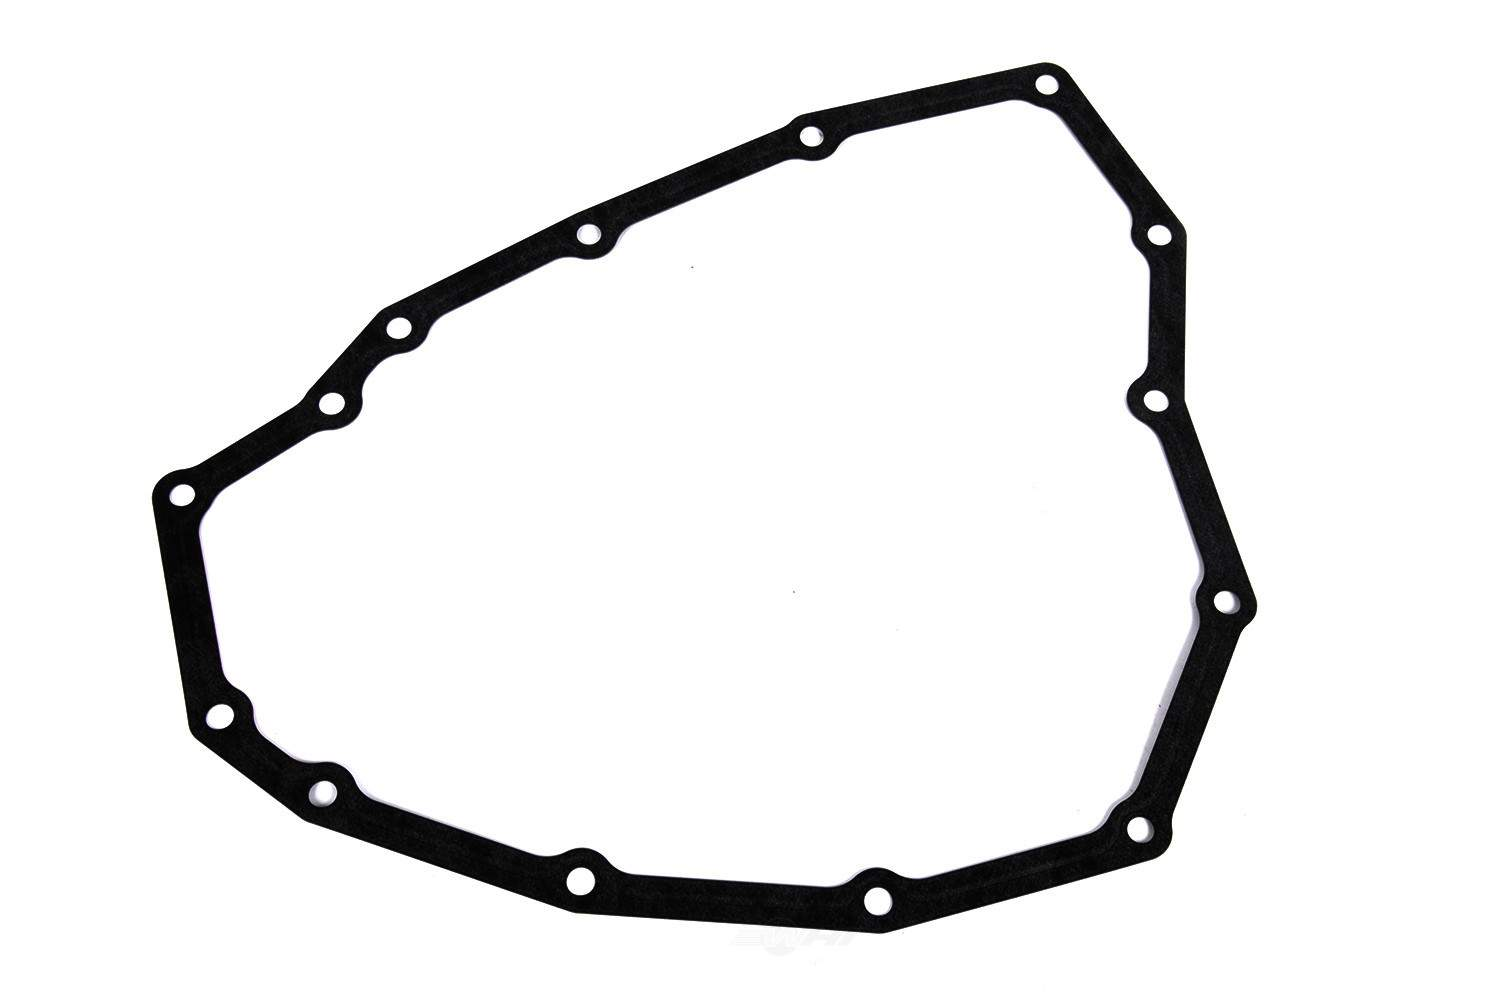 ACDELCO GM ORIGINAL EQUIPMENT - Automatic Transmission Oil Pan Gasket - DCB 25191102